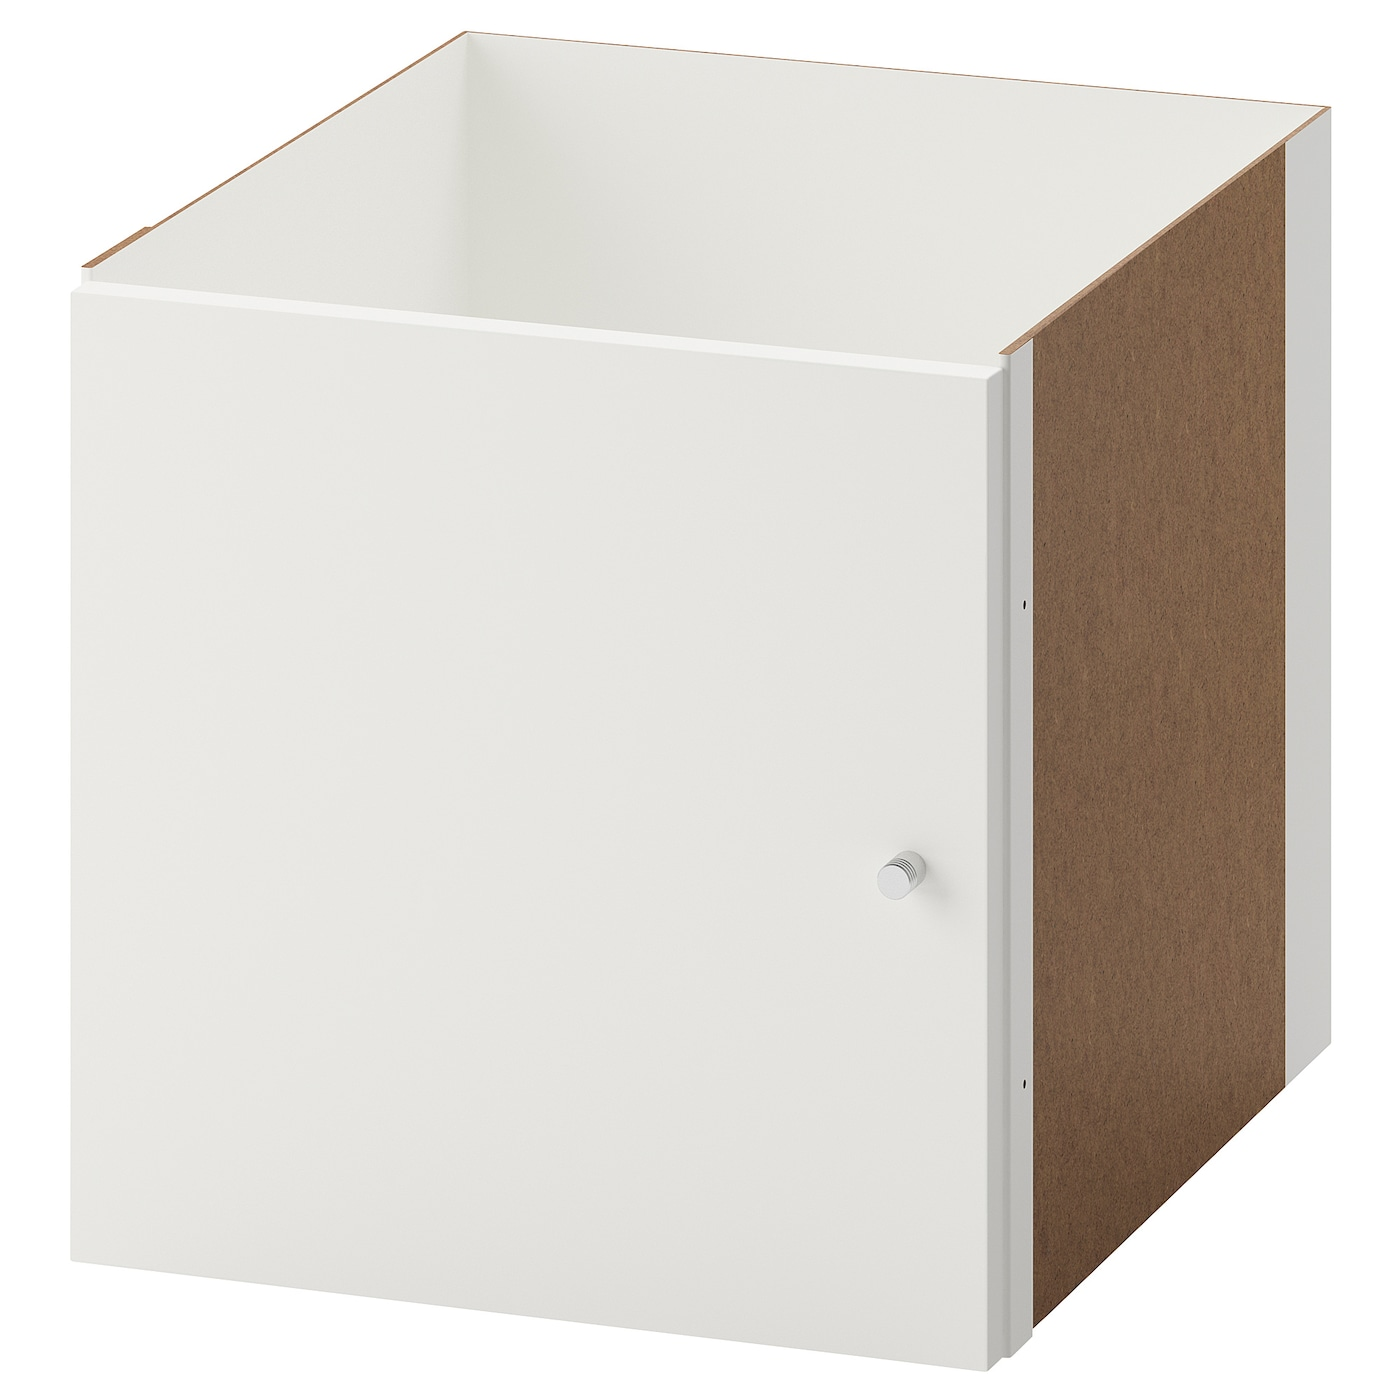 IKEA KALLAX insert with door Easy to assemble.